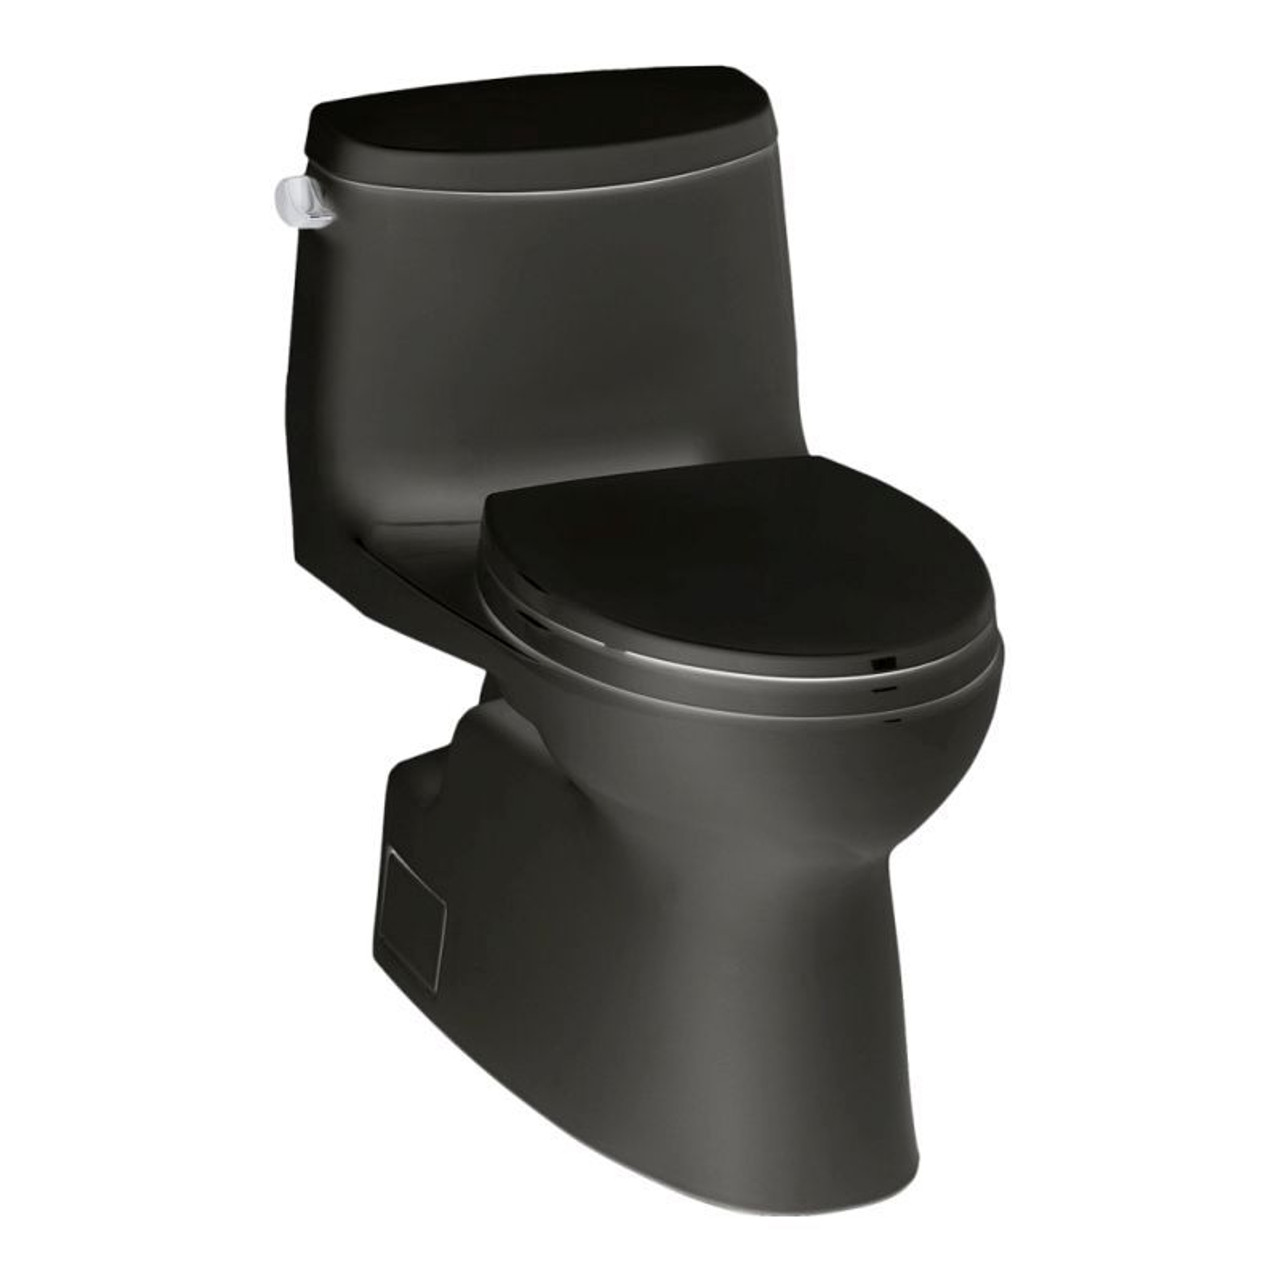 Astonishing Toto Ms614114Cef51 Carlyle Ii 1 28 Gpf 1 Piece Transitional Toilet With Seat Beatyapartments Chair Design Images Beatyapartmentscom